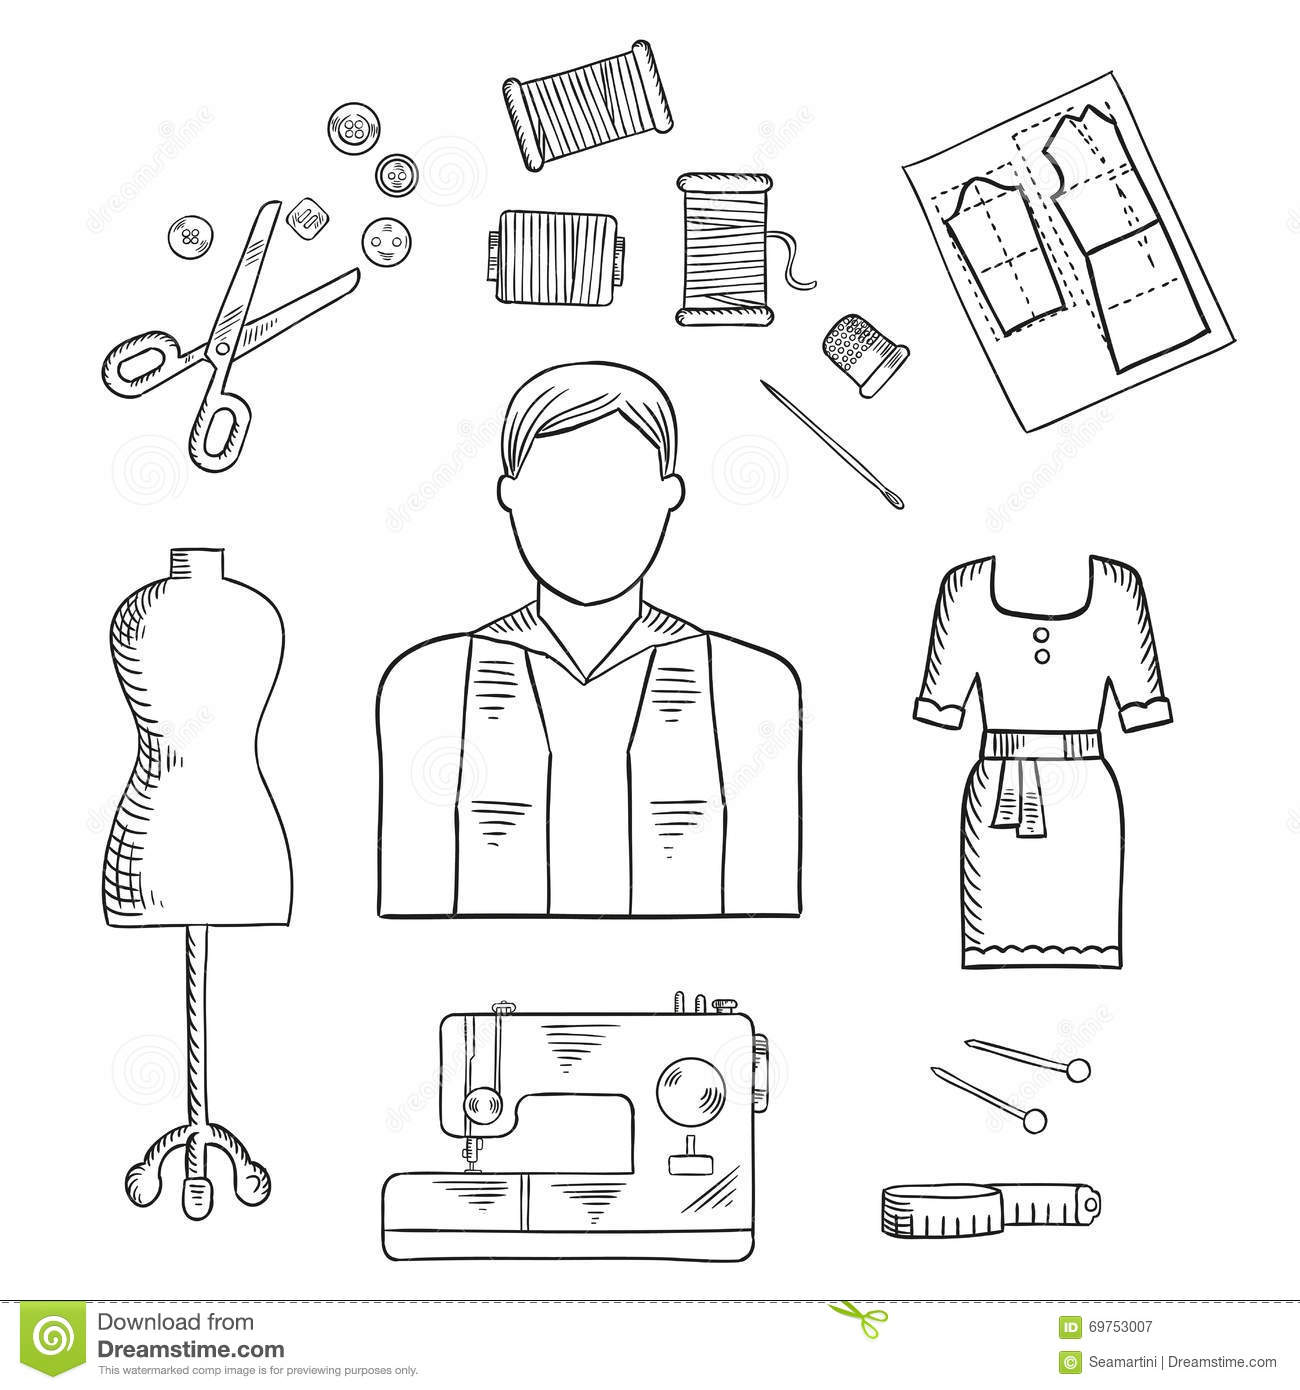 hight resolution of tailor or fashion designer profession sketch icon stock house drawing diagram hand drawing diagram